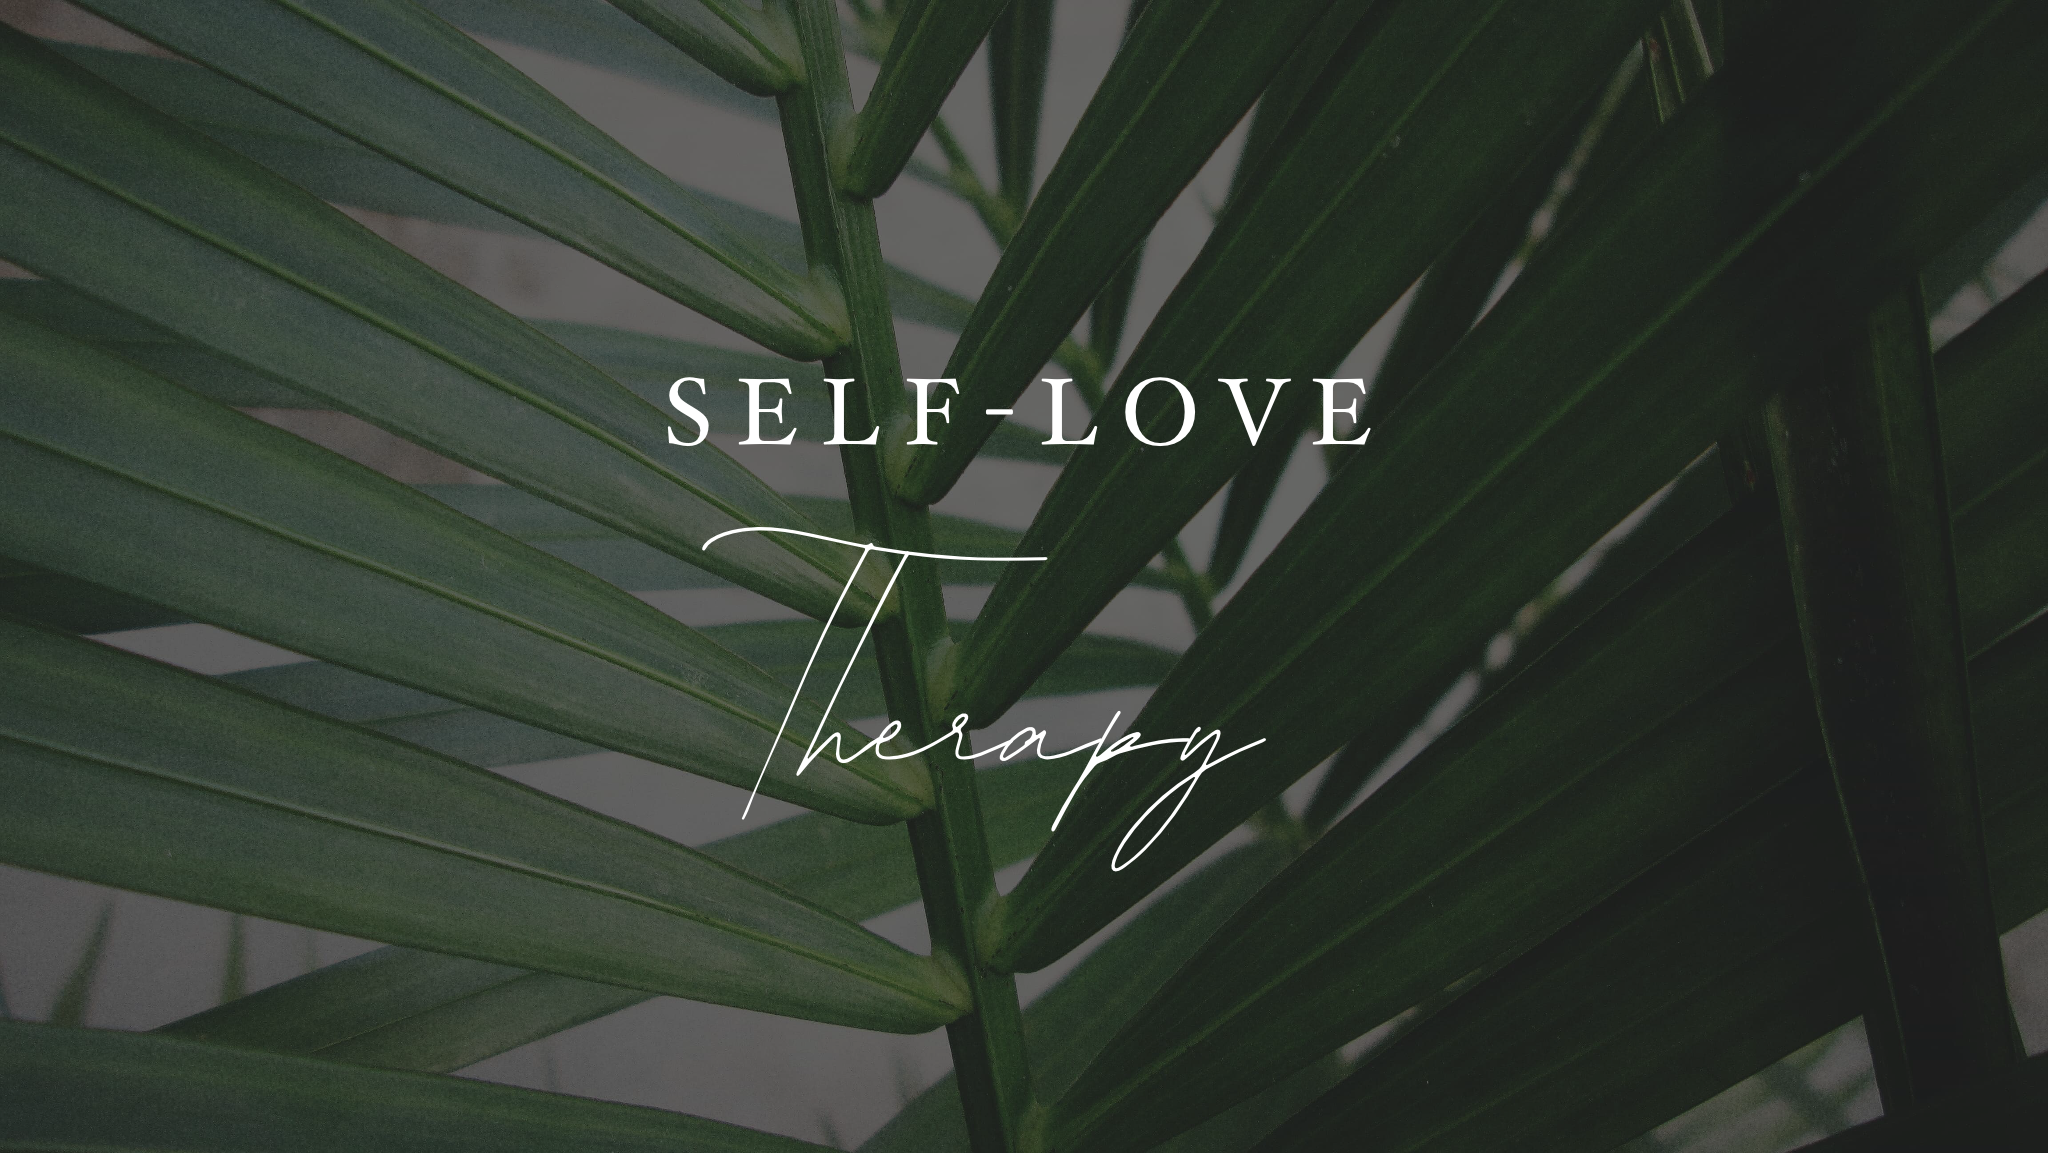 Self-love therapy package Artwork.PNG